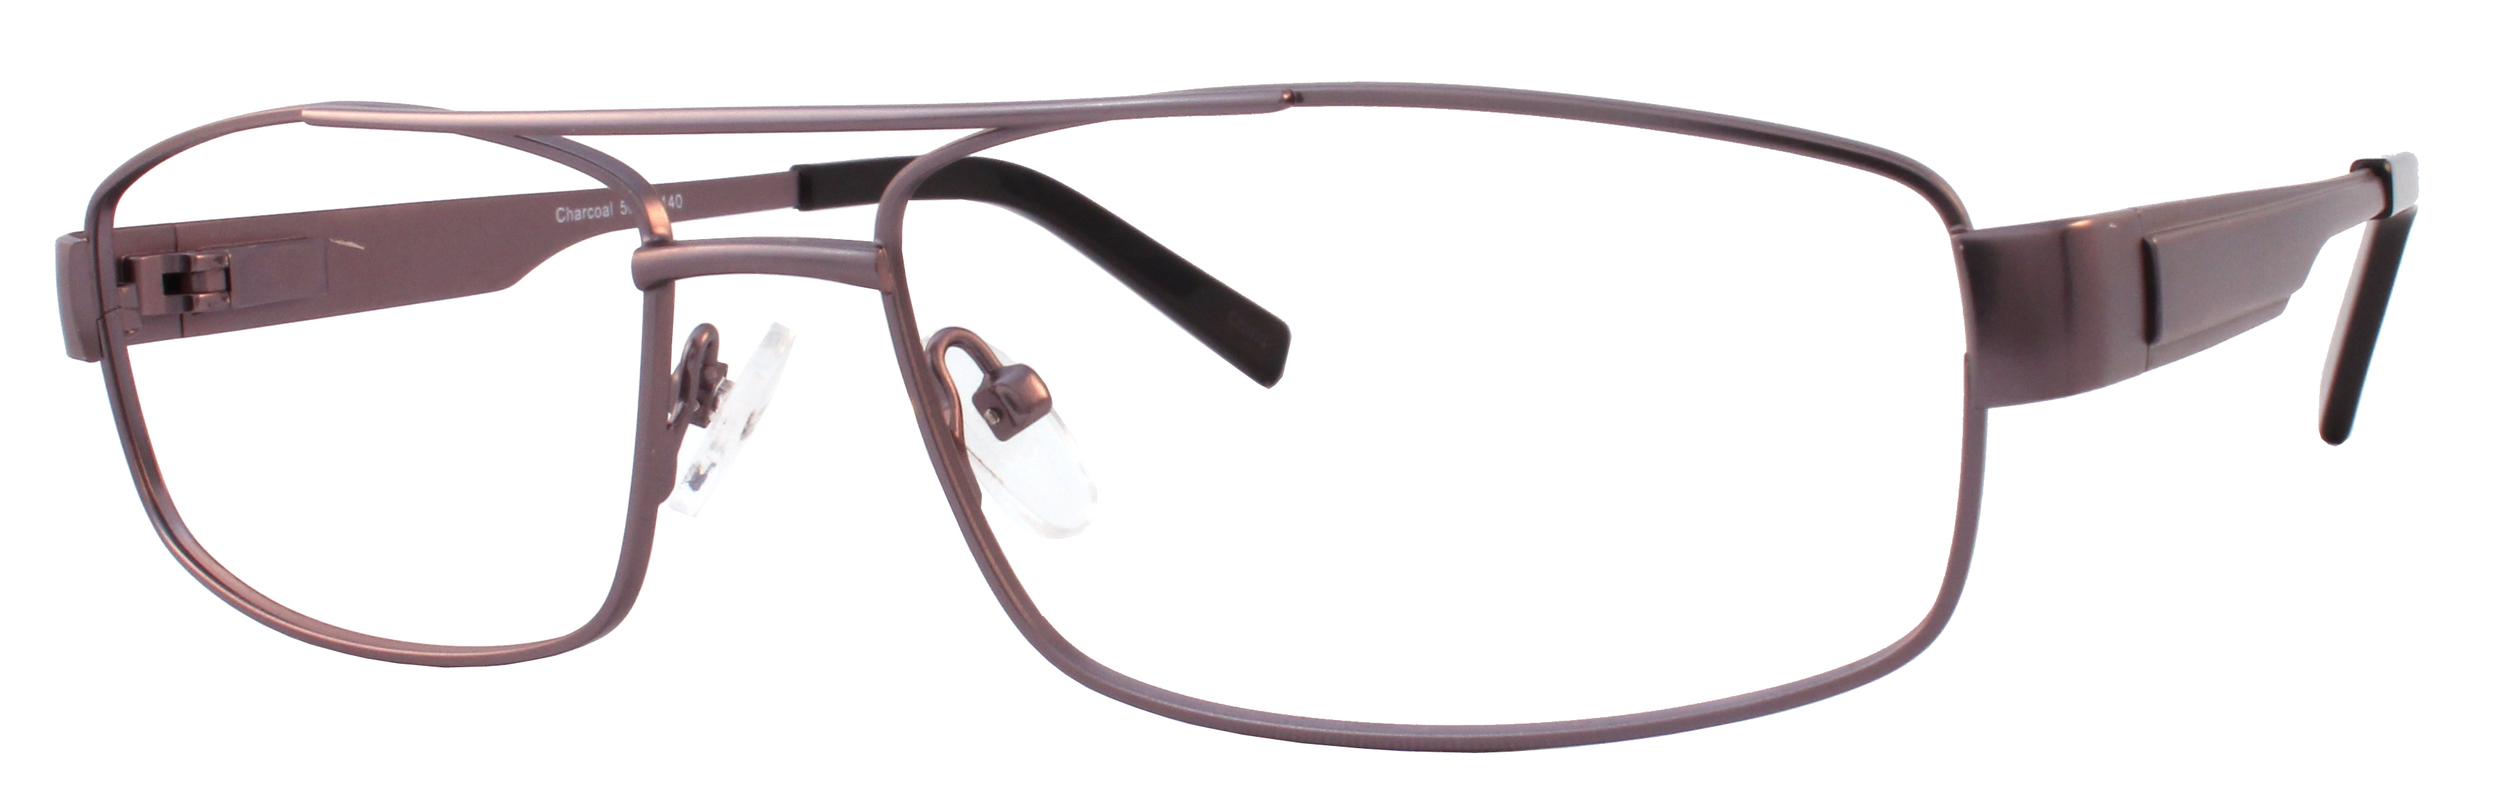 EH-195:  56-16-140, Available in Chestnut, Charcoal or Onyx